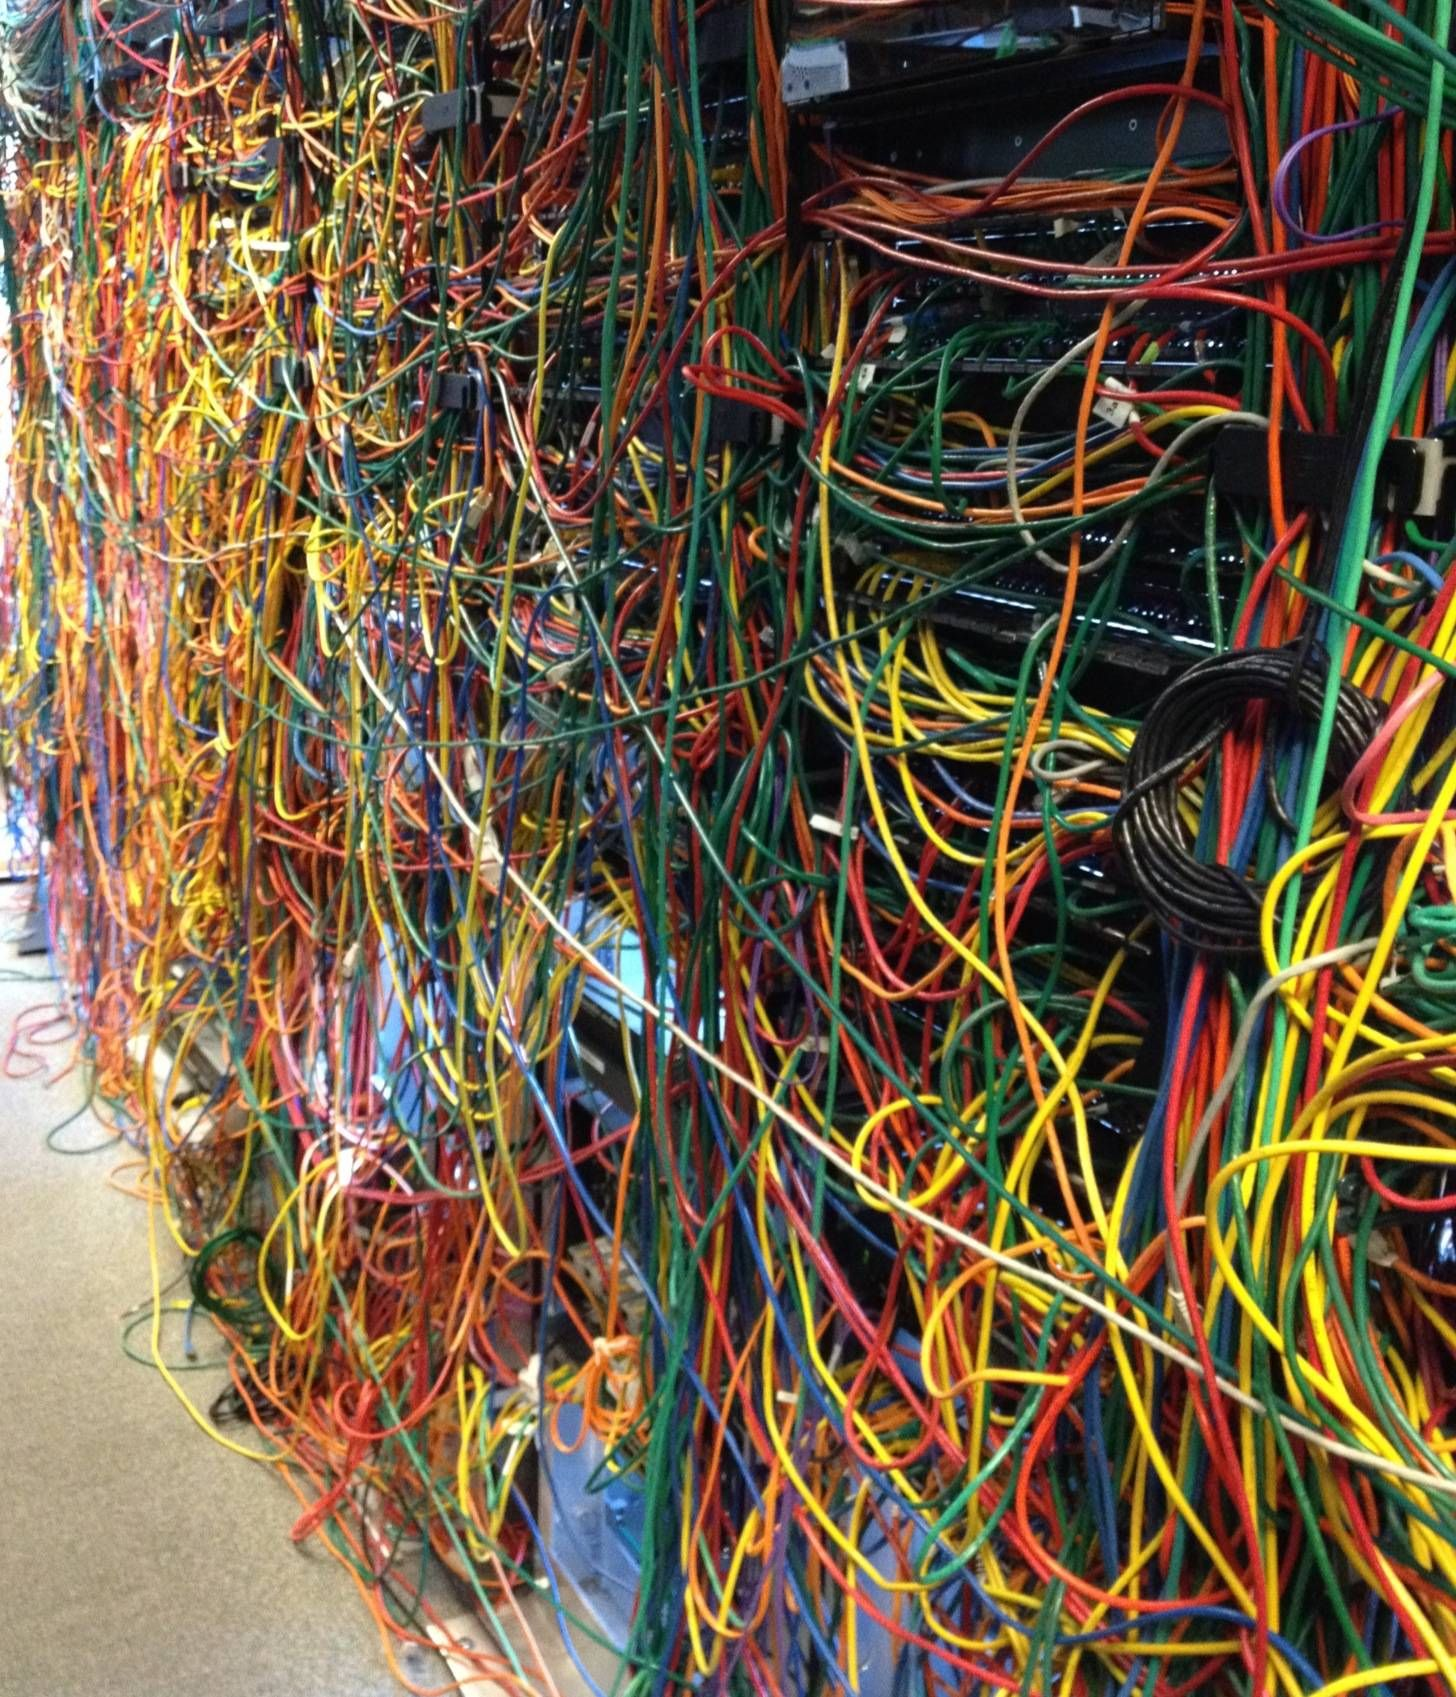 A network mess or cable art you decide server room